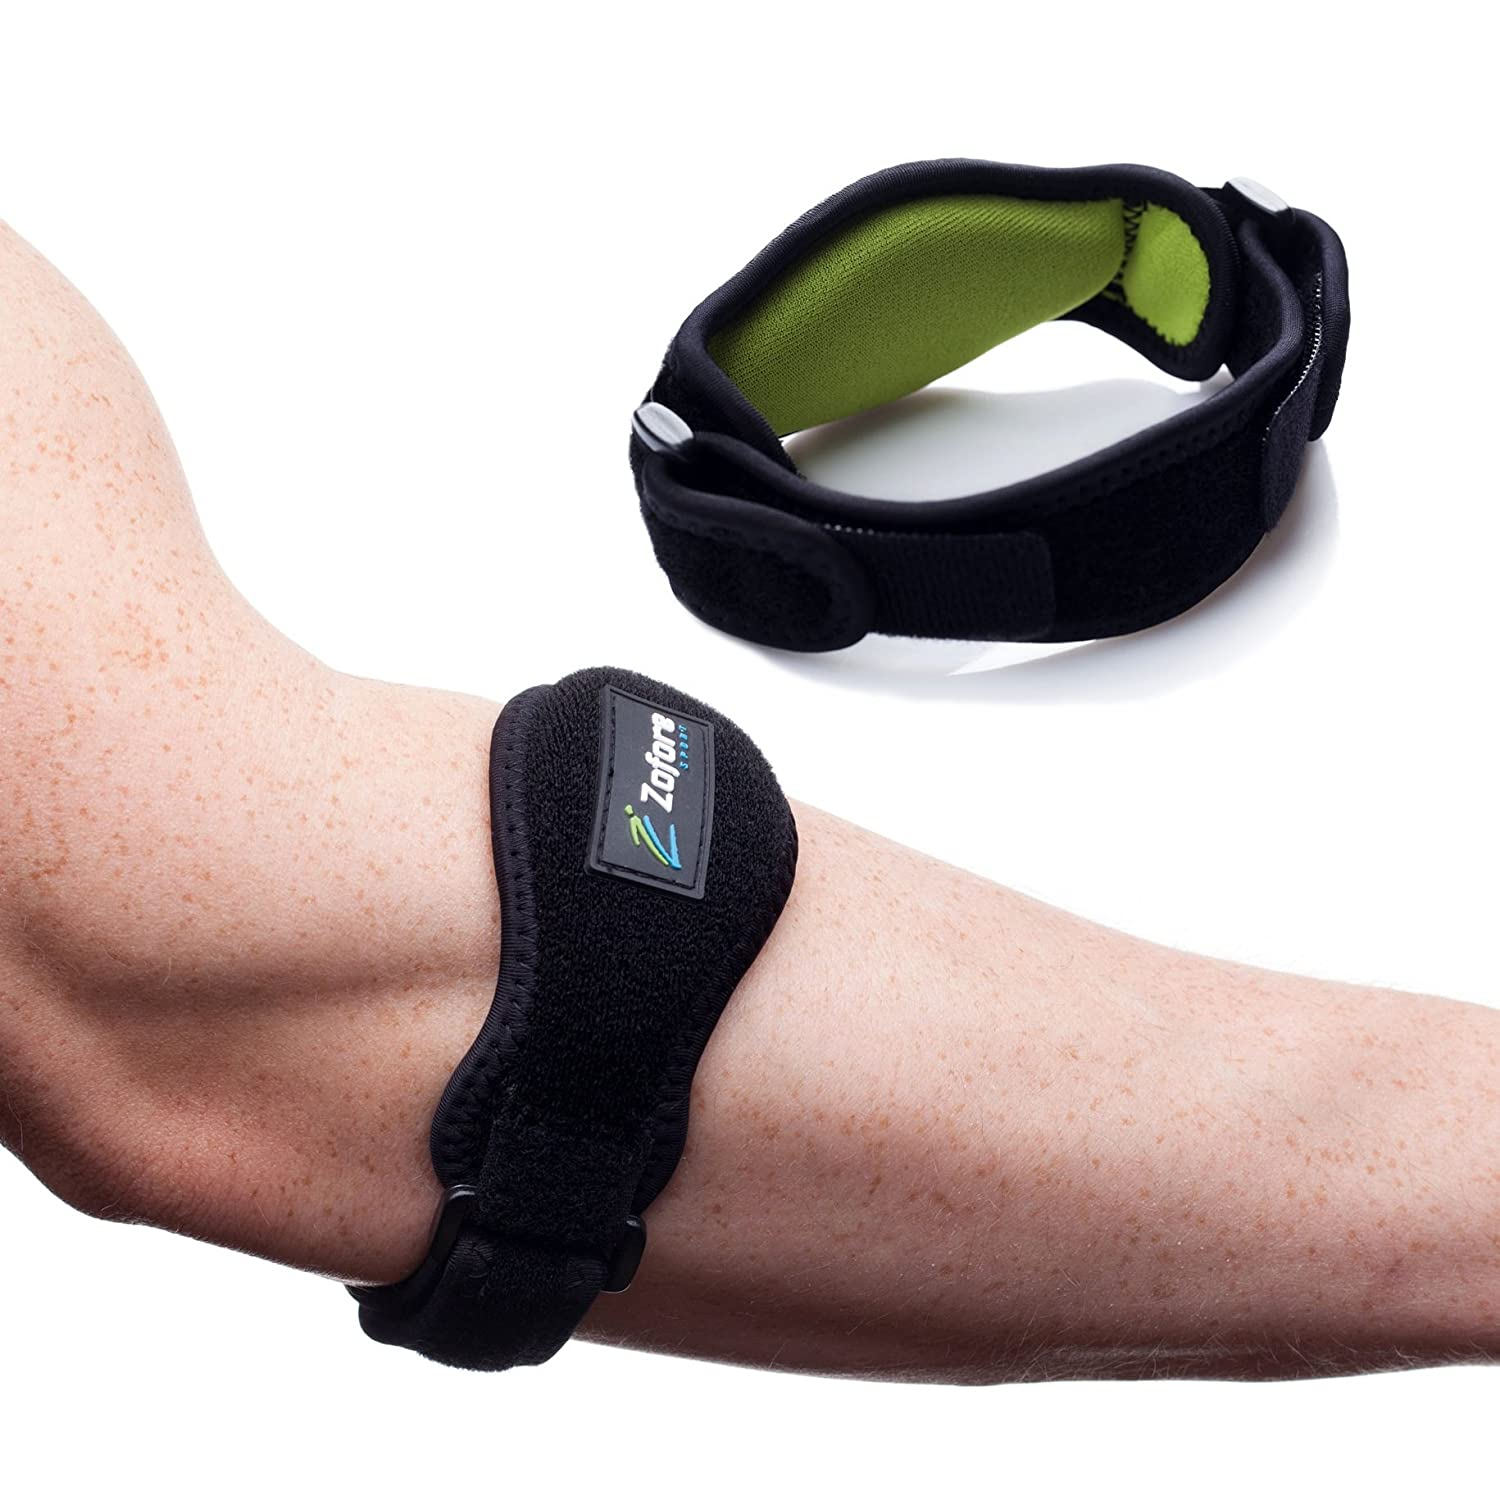 301f08d101 Tennis Elbow Brace Support With Compression Pad (2-Count) - Effective Pain  Relief for Tennis & Golfers Elbow for Men & Women: Amazon.co.uk: Sports &  ...